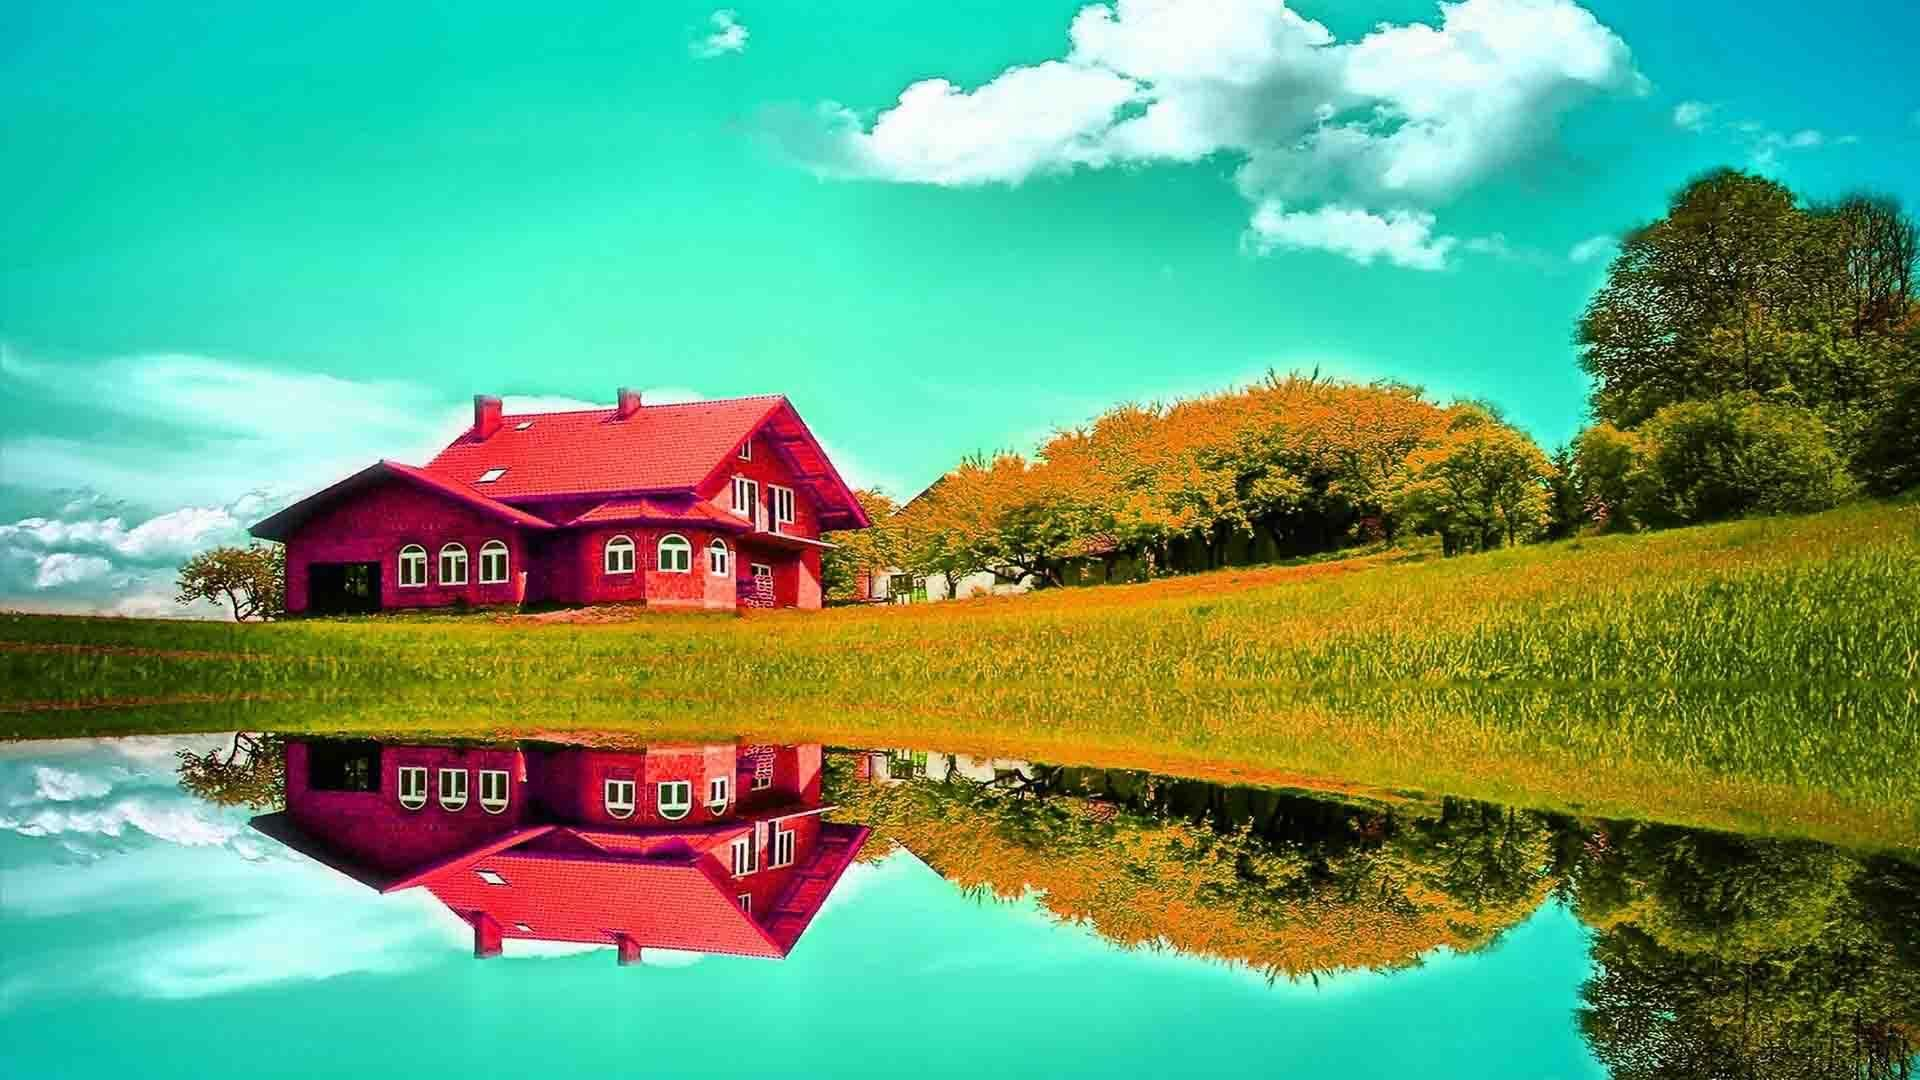 Best Scenery Wallpapers Hd 1920x1080 Wallpaper Teahub Io